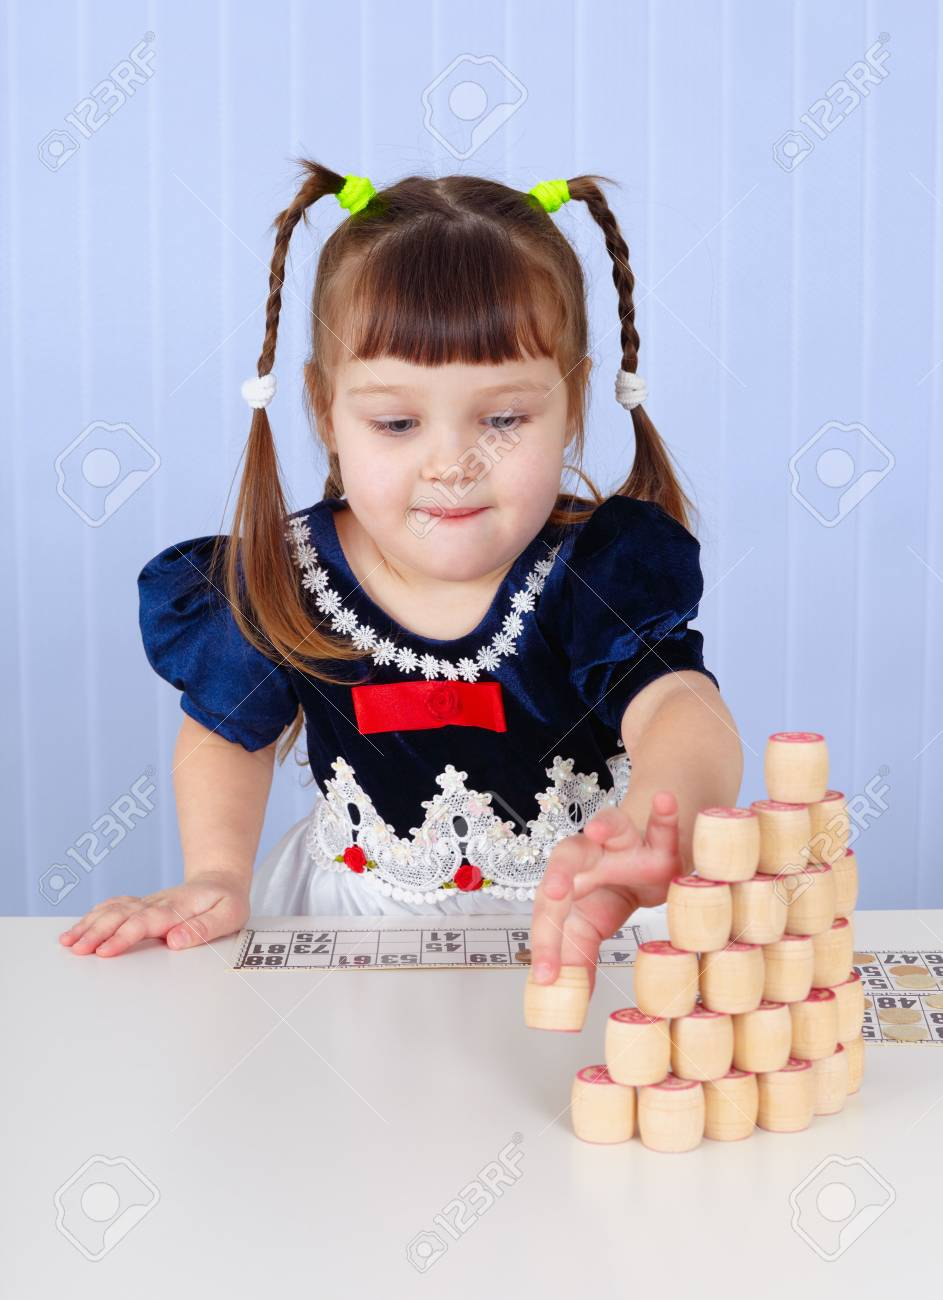 Little girl playing with toys on the table Stock Photo - 6470929